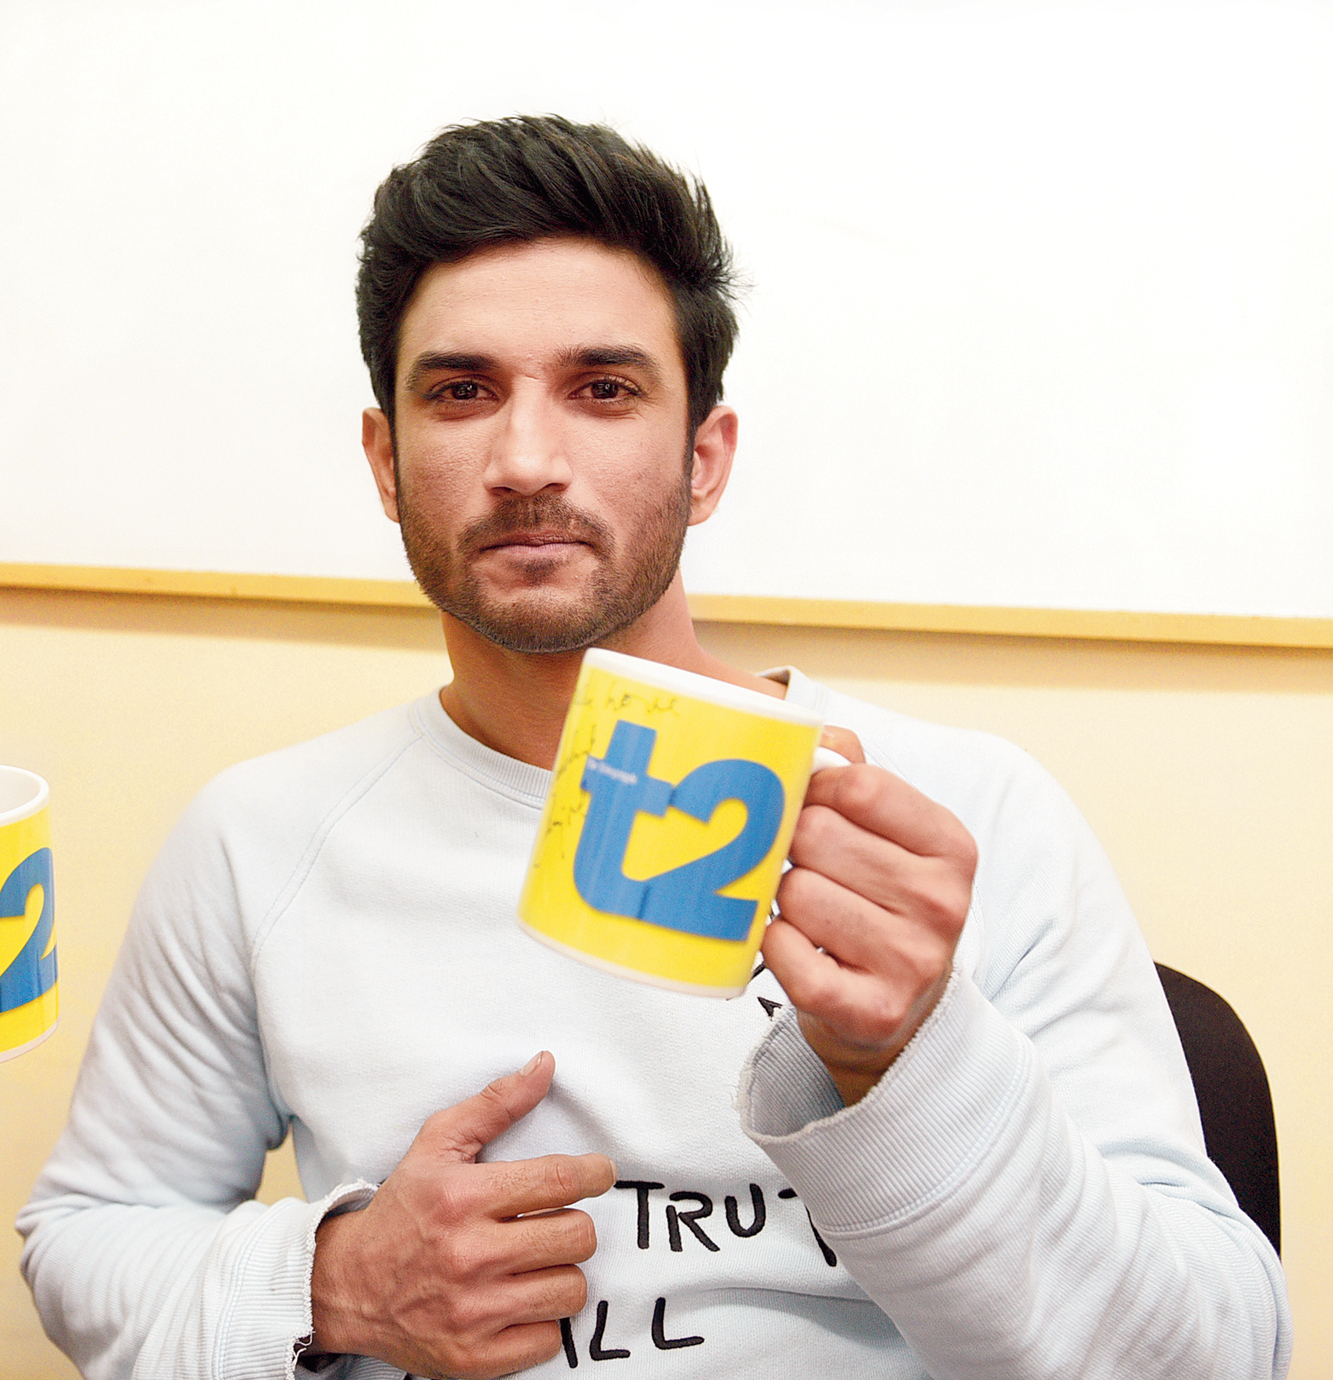 Sushant Singh Rajput at the t2 office in June 2017 when he had dropped in to promote Raabta